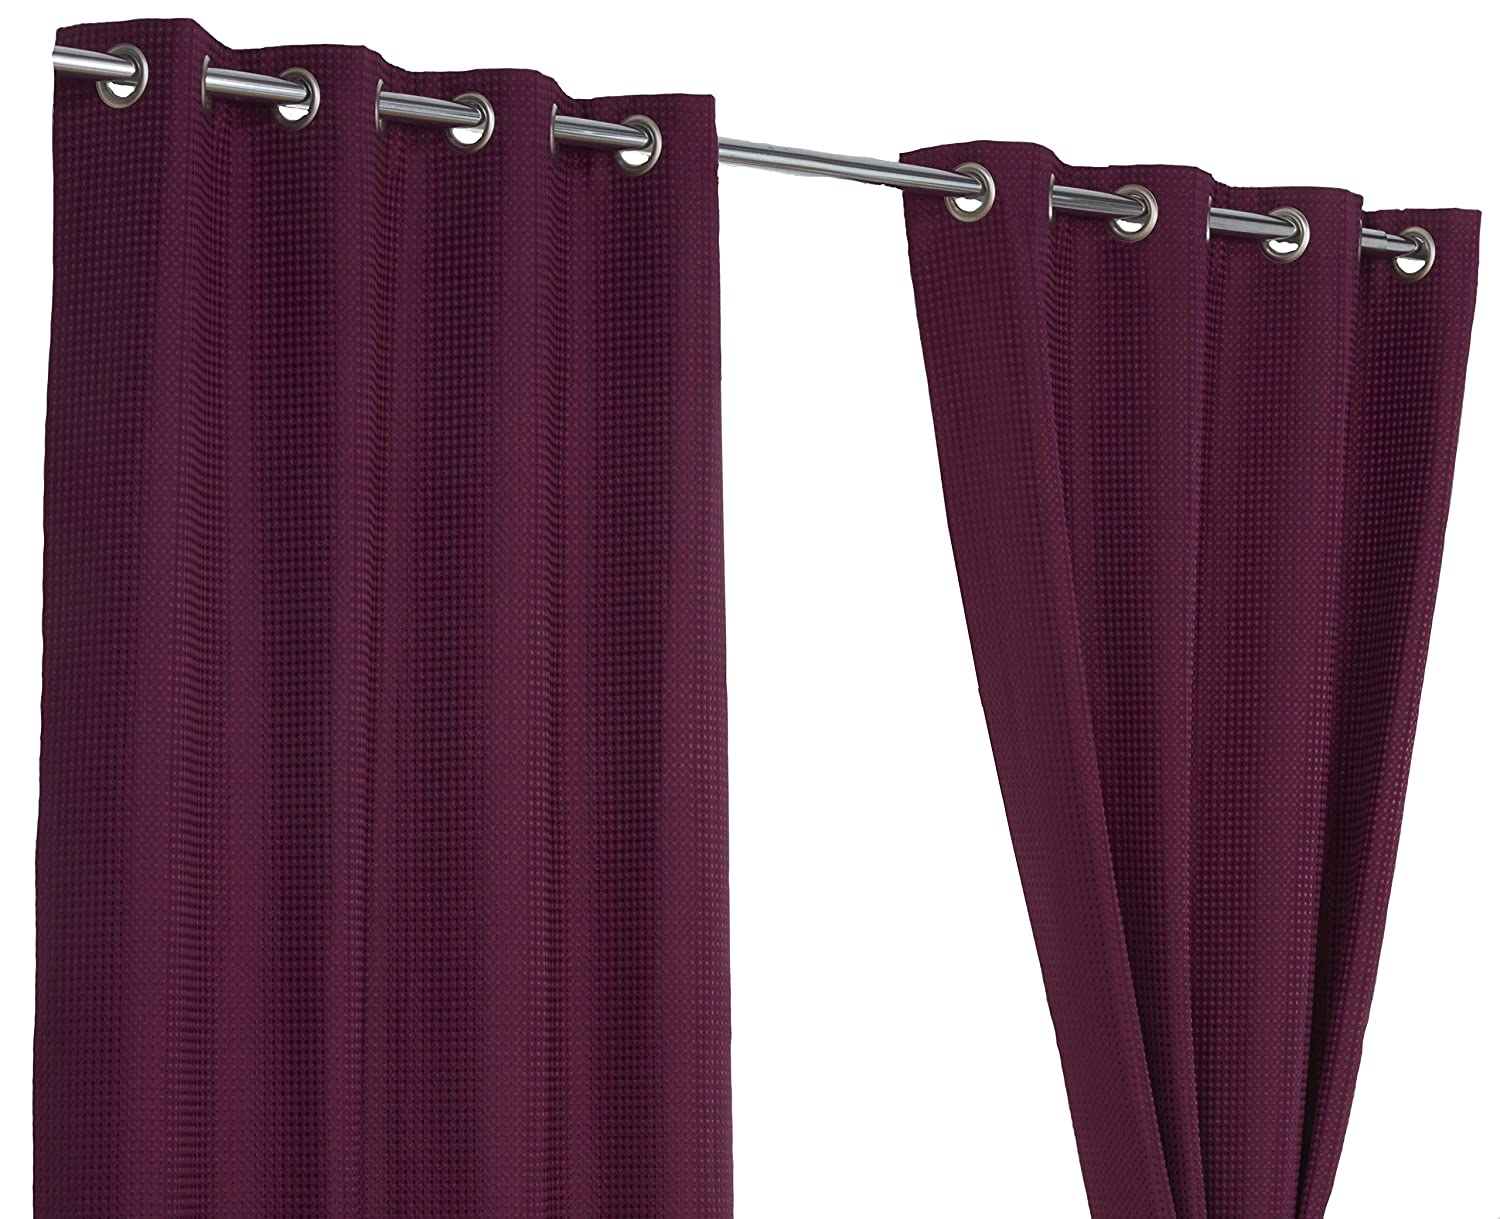 Waffle Brown Ring Top / Eyelet Fully Lined Readymade Curtain Pair 46x54in(116x137cm) Approximately By Hamilton McBride® 4 Your Home